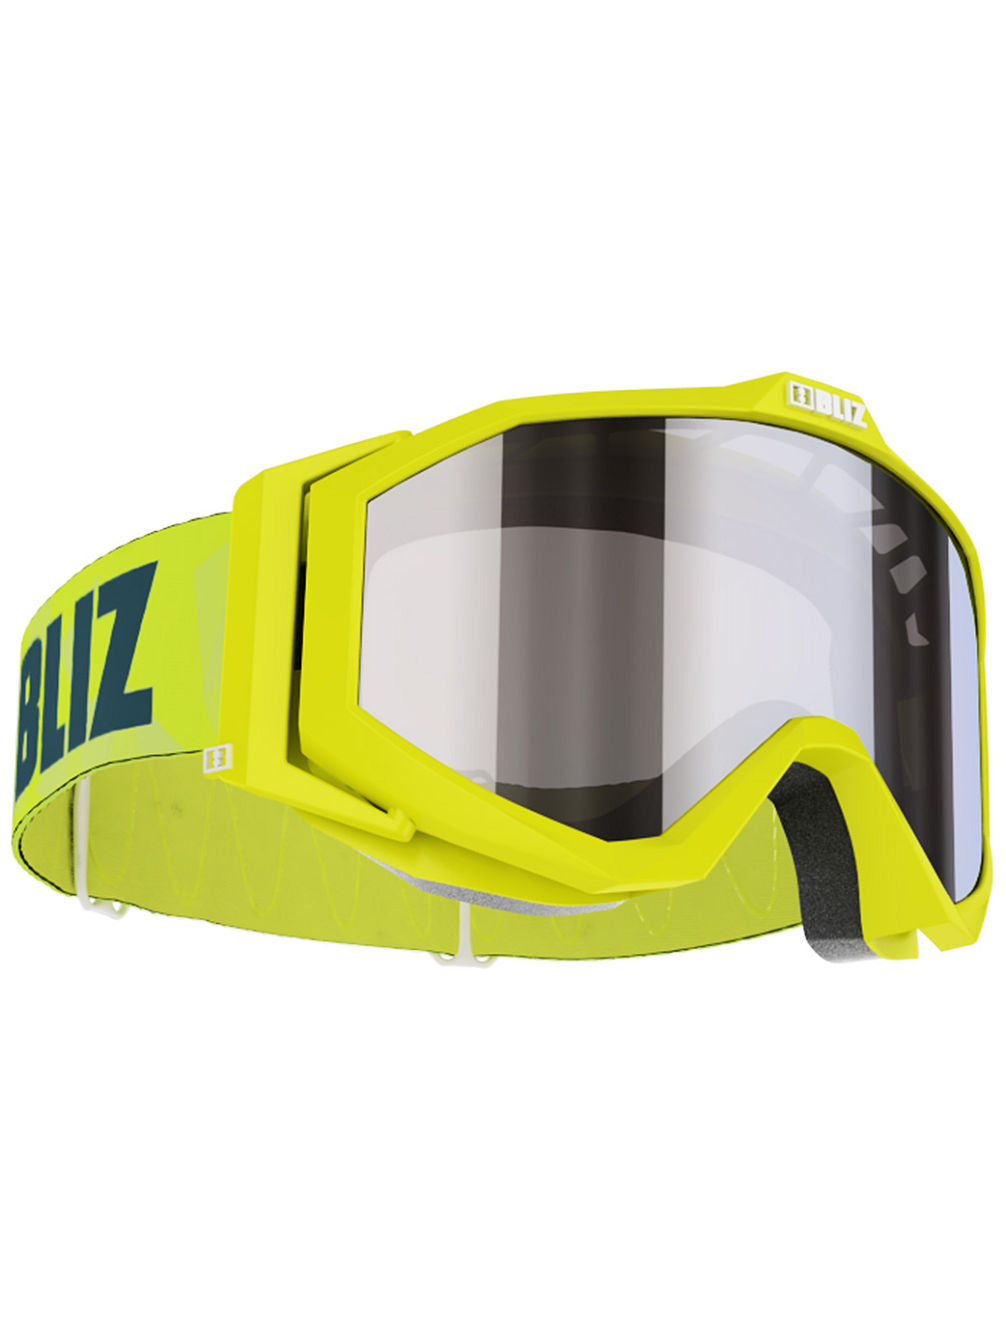 bliz-protective-sports-gear-edge-junior-lime-green-youth